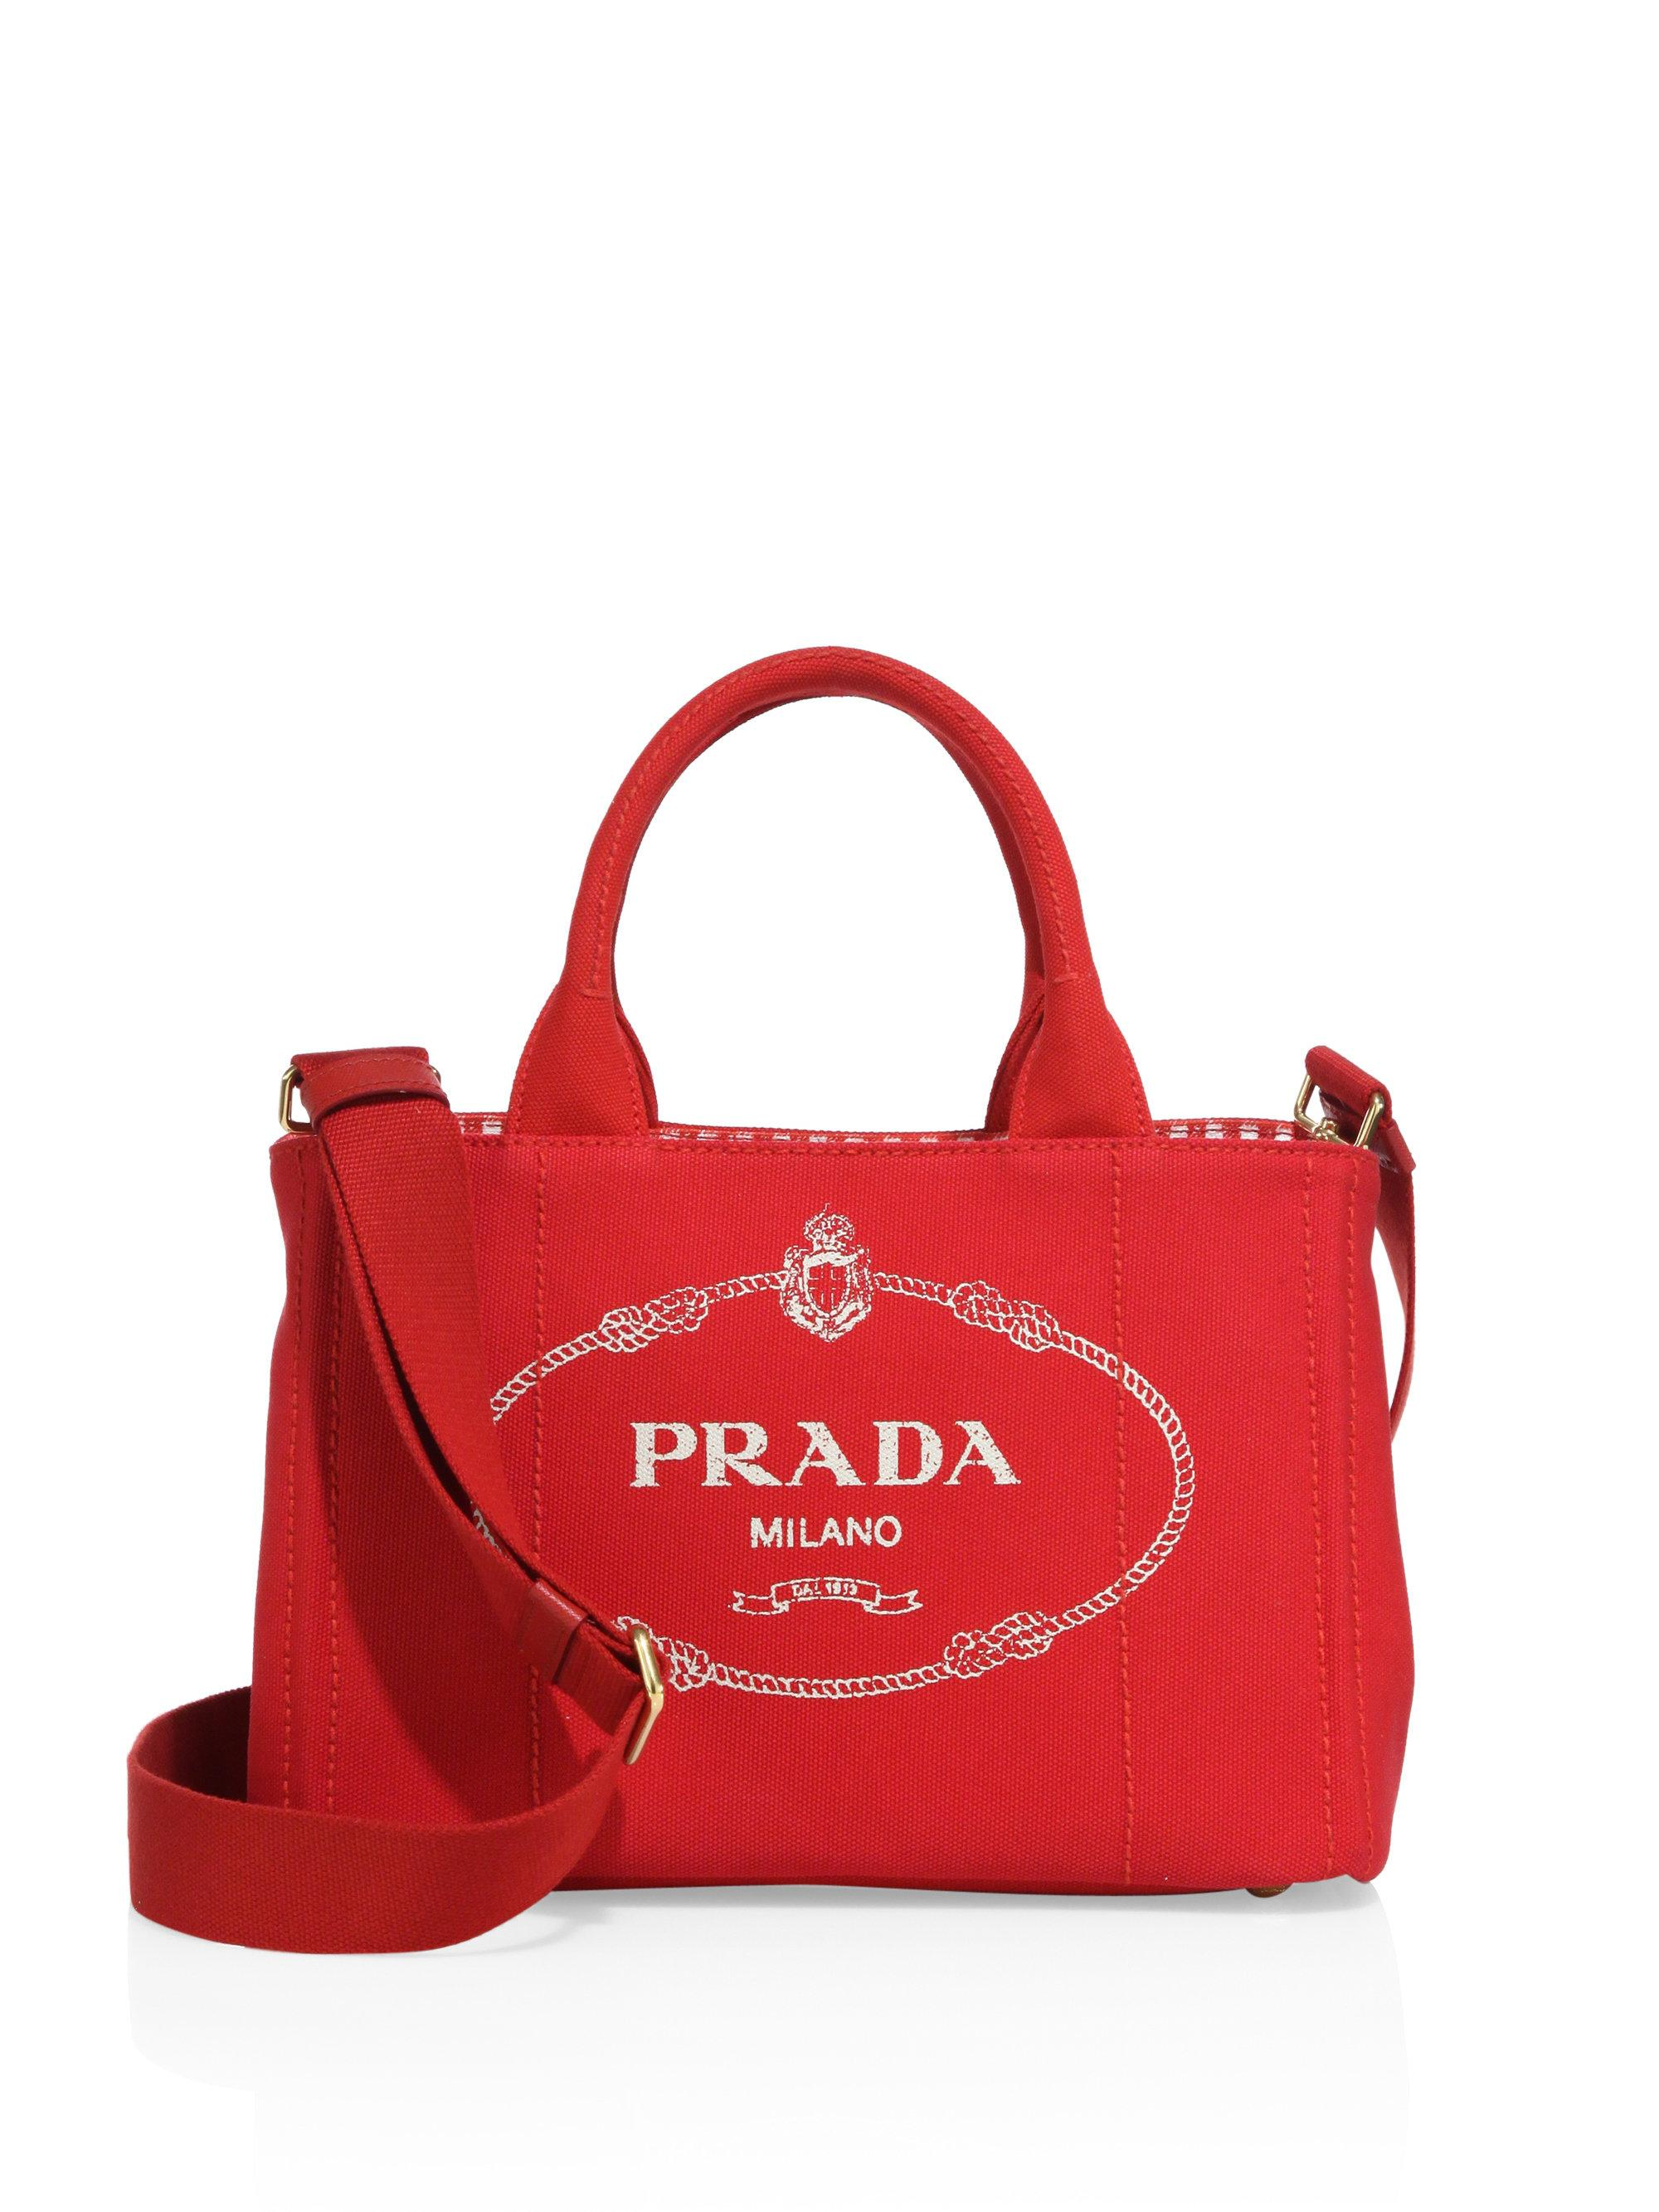 ab65c537d1f8 Prada Canapa Canvas Tote in Red - Lyst